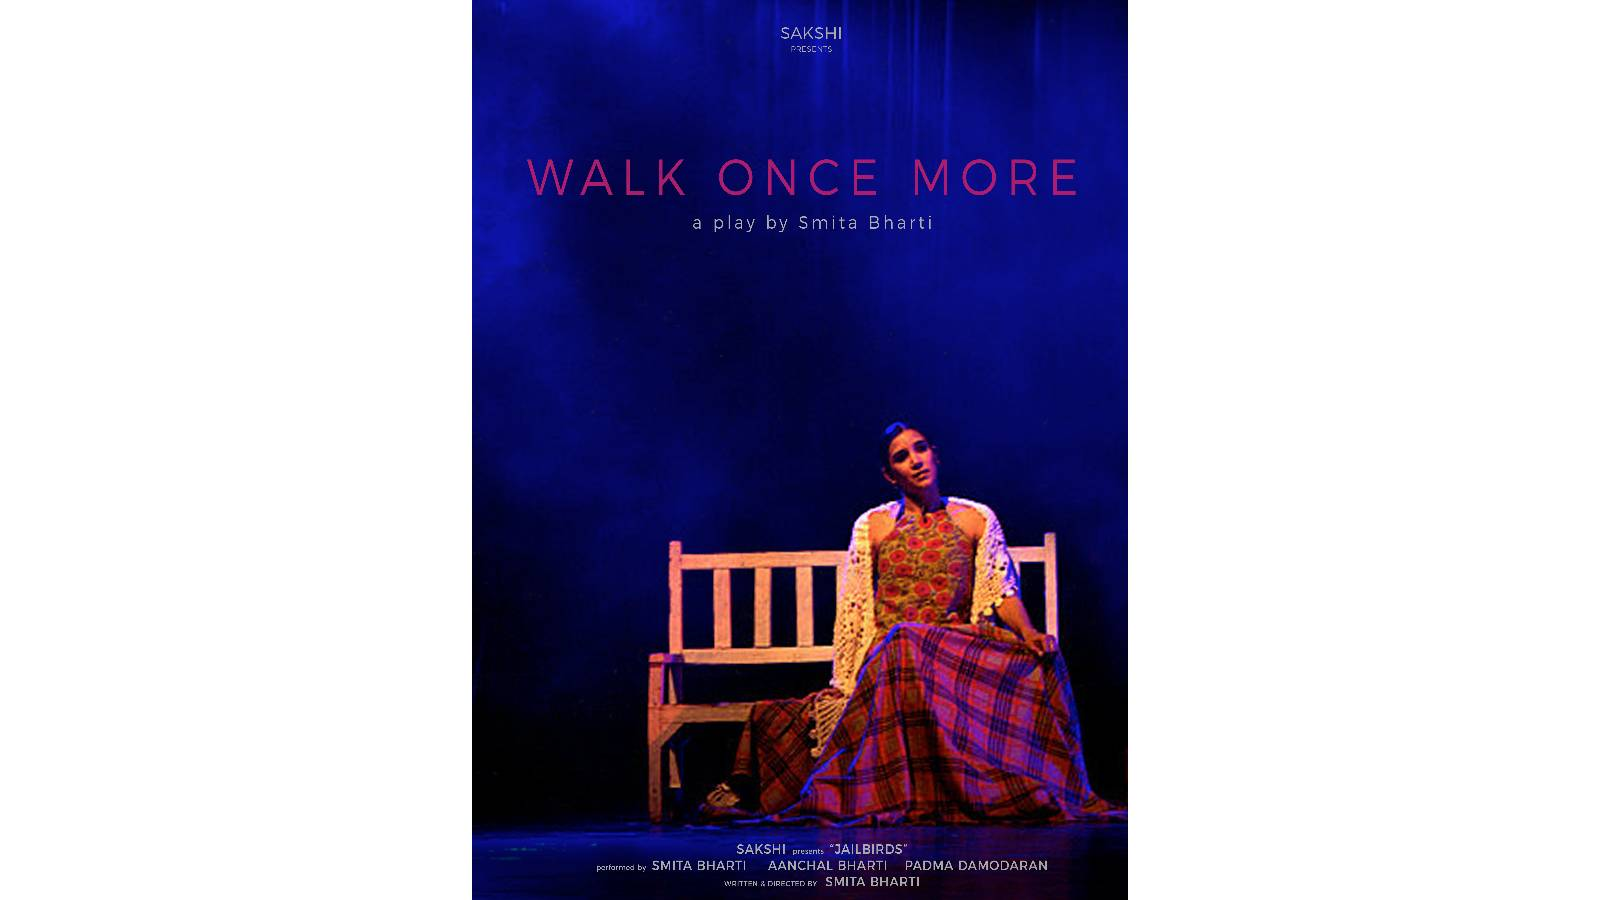 #StageForChange - Walk Once More